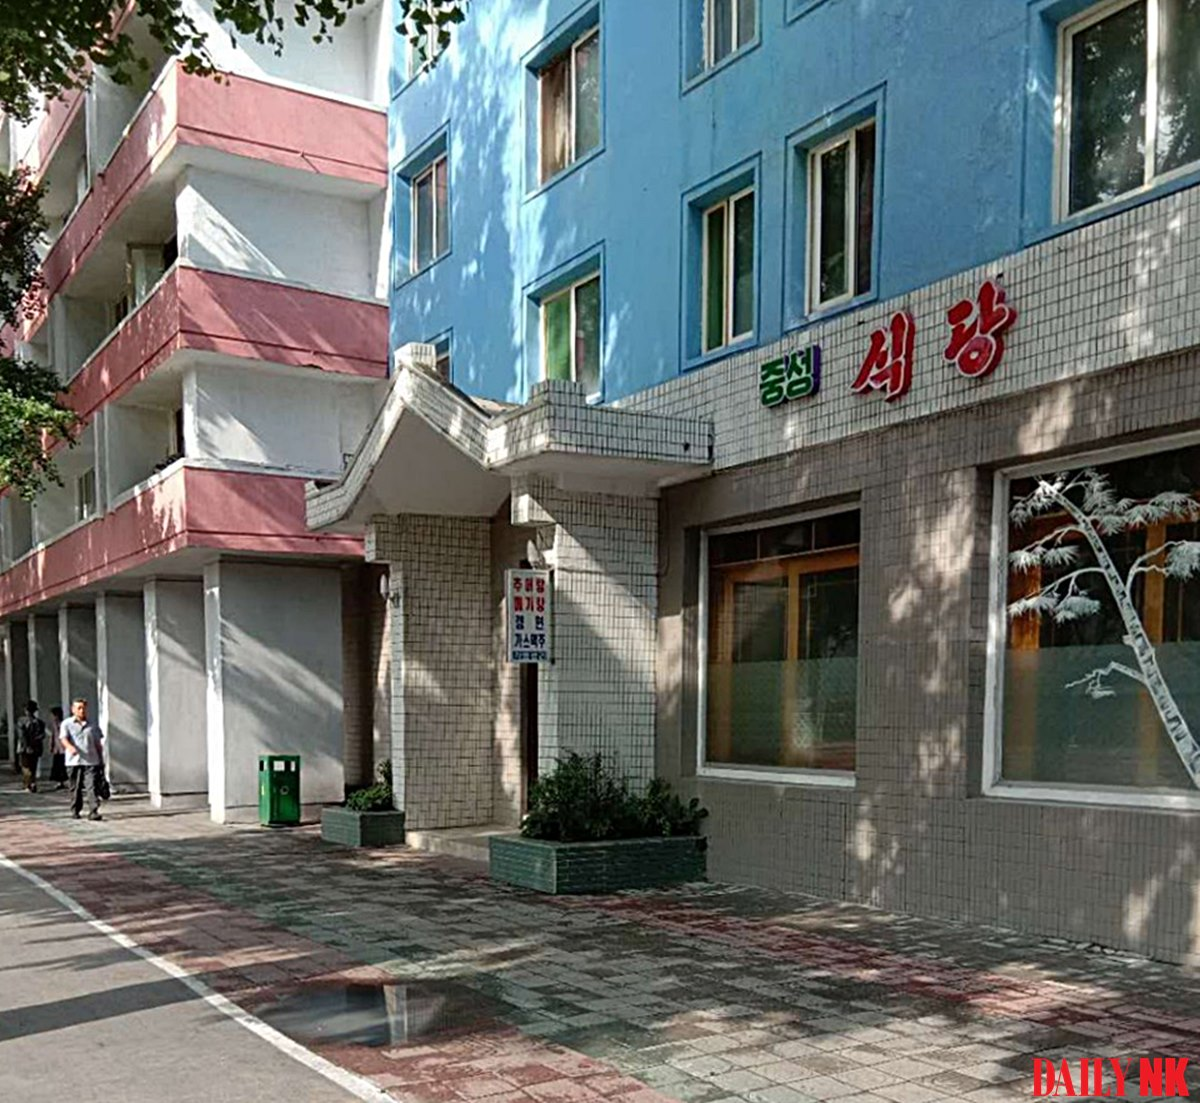 Privately-run restaurant in Pyongyang